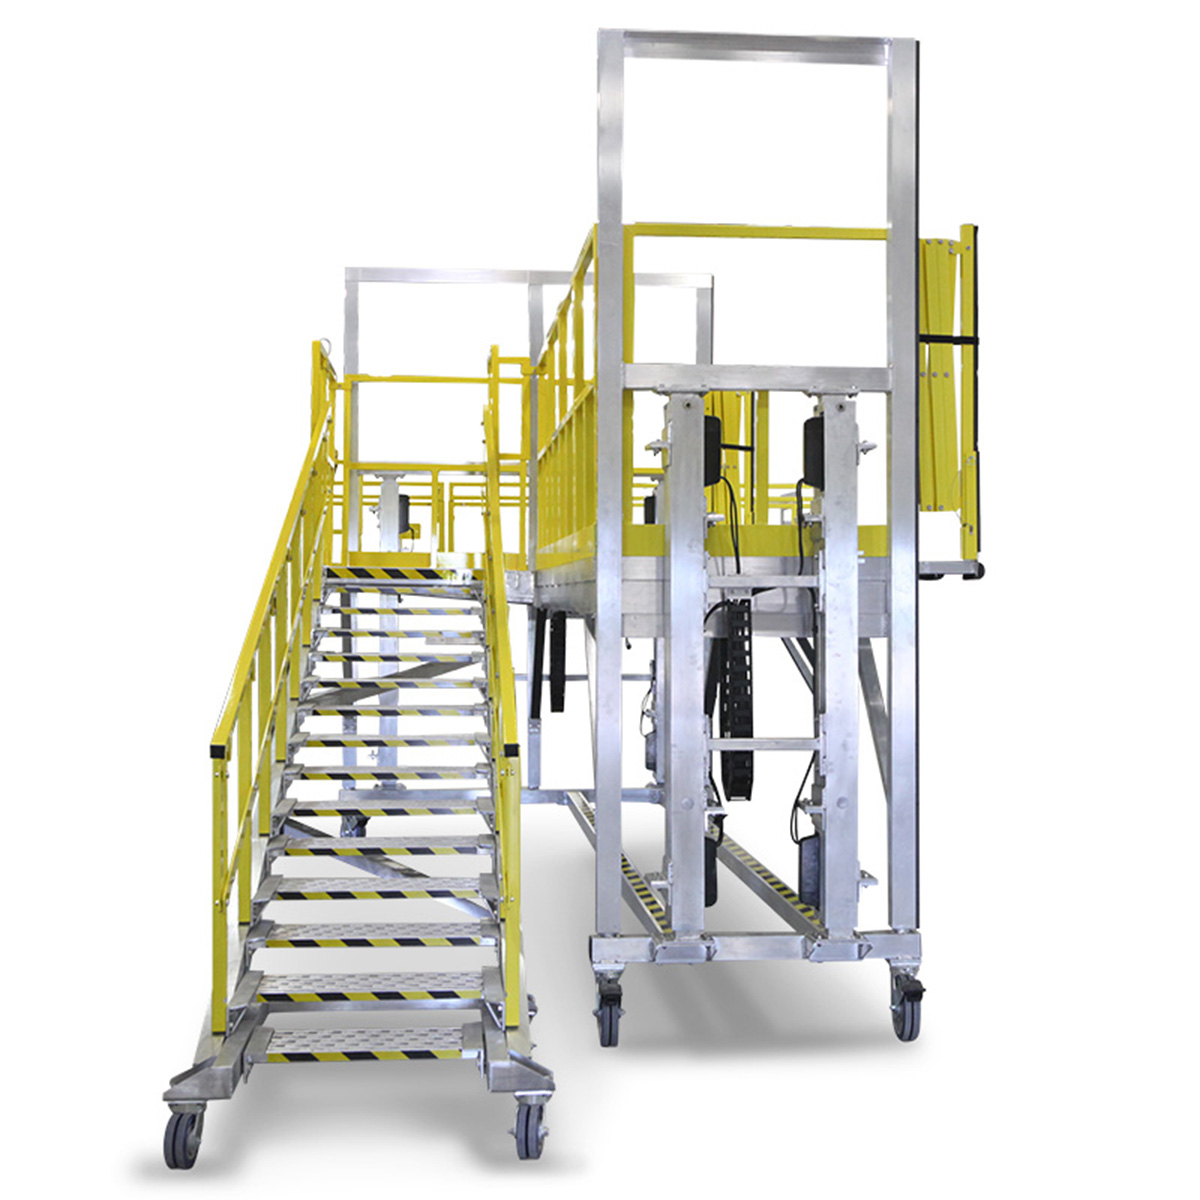 OSHA compliant, mobile aluminum work platform with adjustable staircase and electric height adjustability capable of vertical travel up to 8 feet or more.